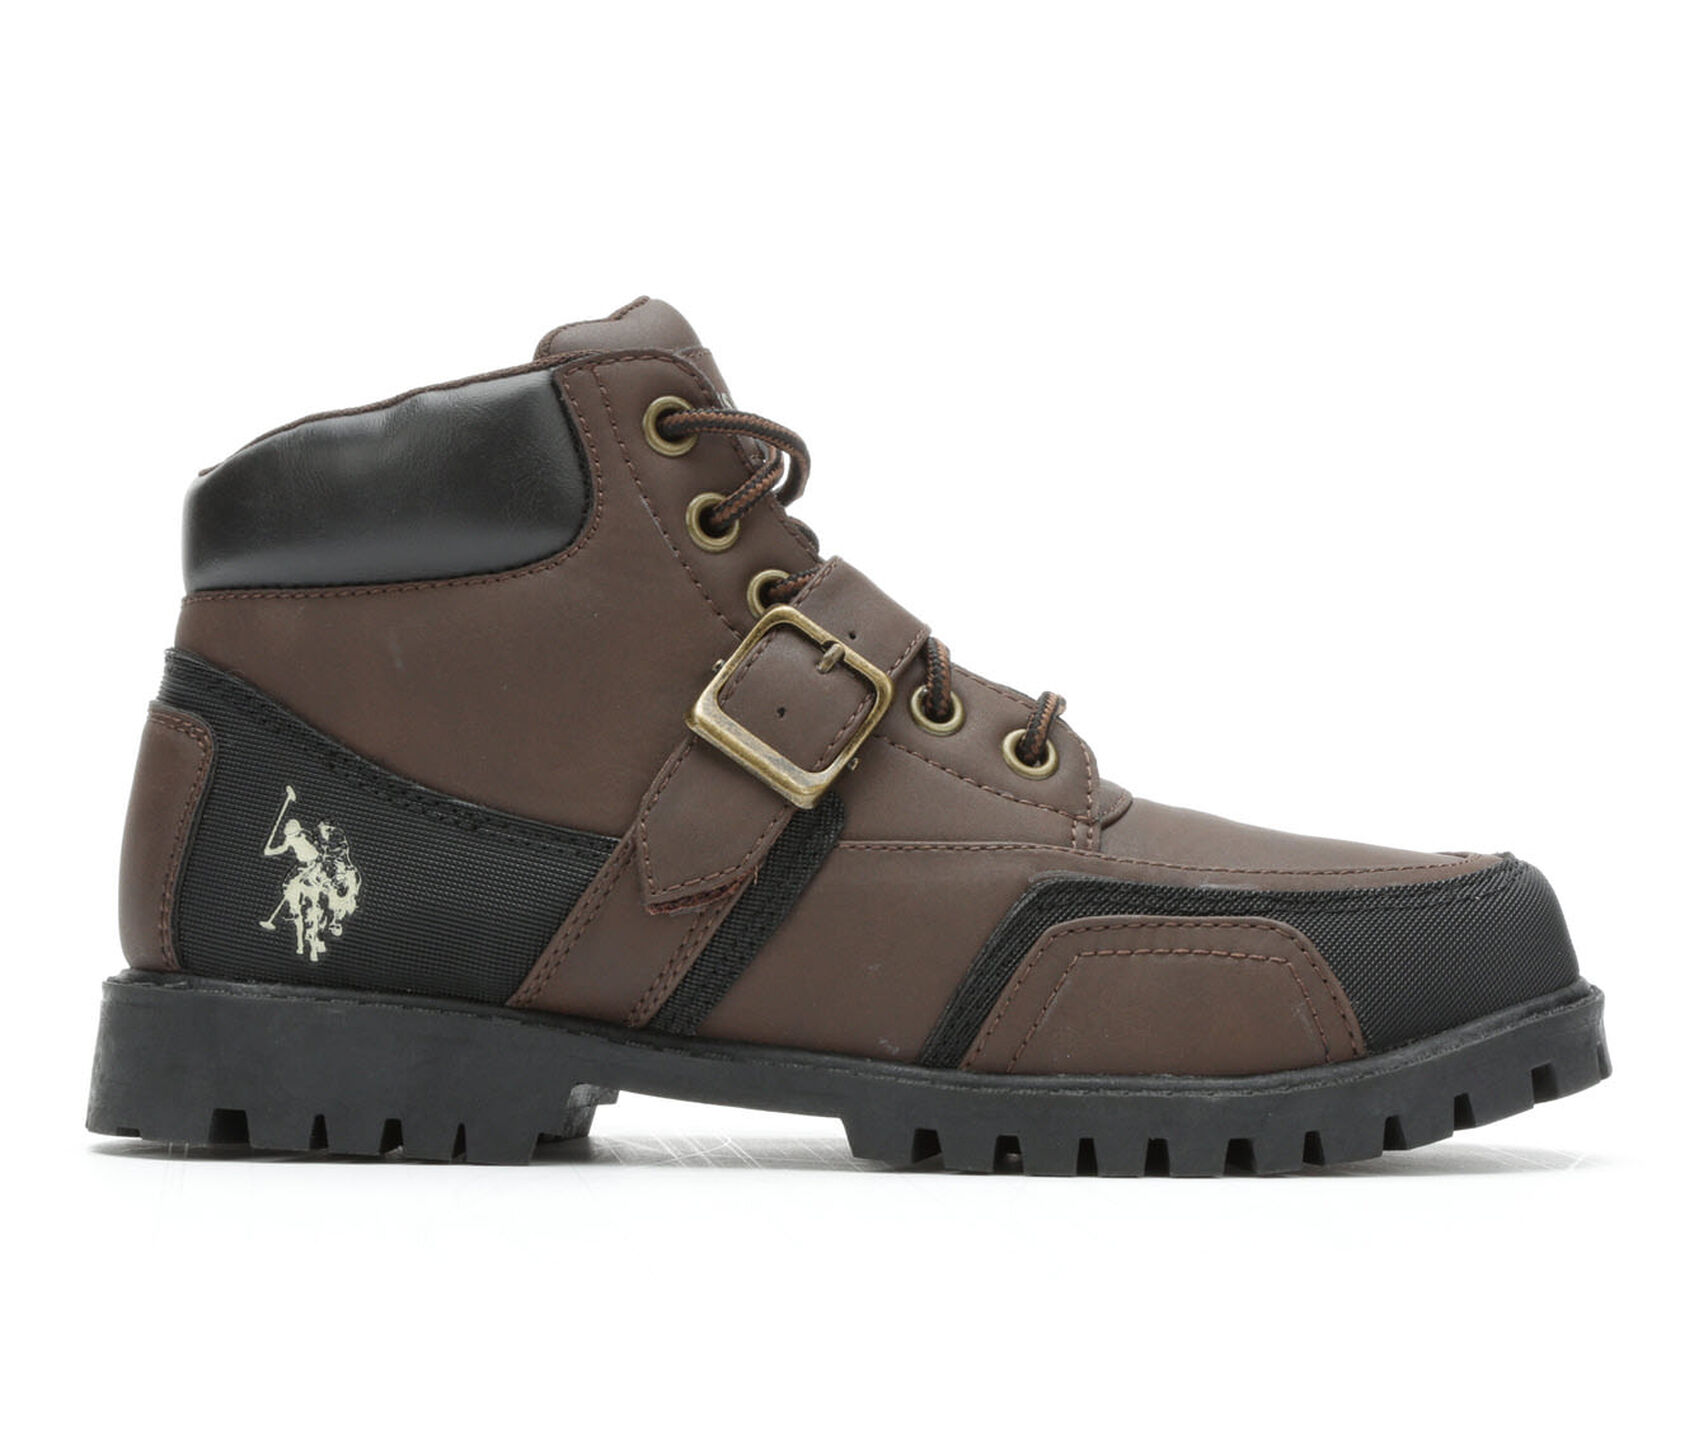 70afc045b21 Men's US Polo Assn Andes Boots | Shoe Carnival